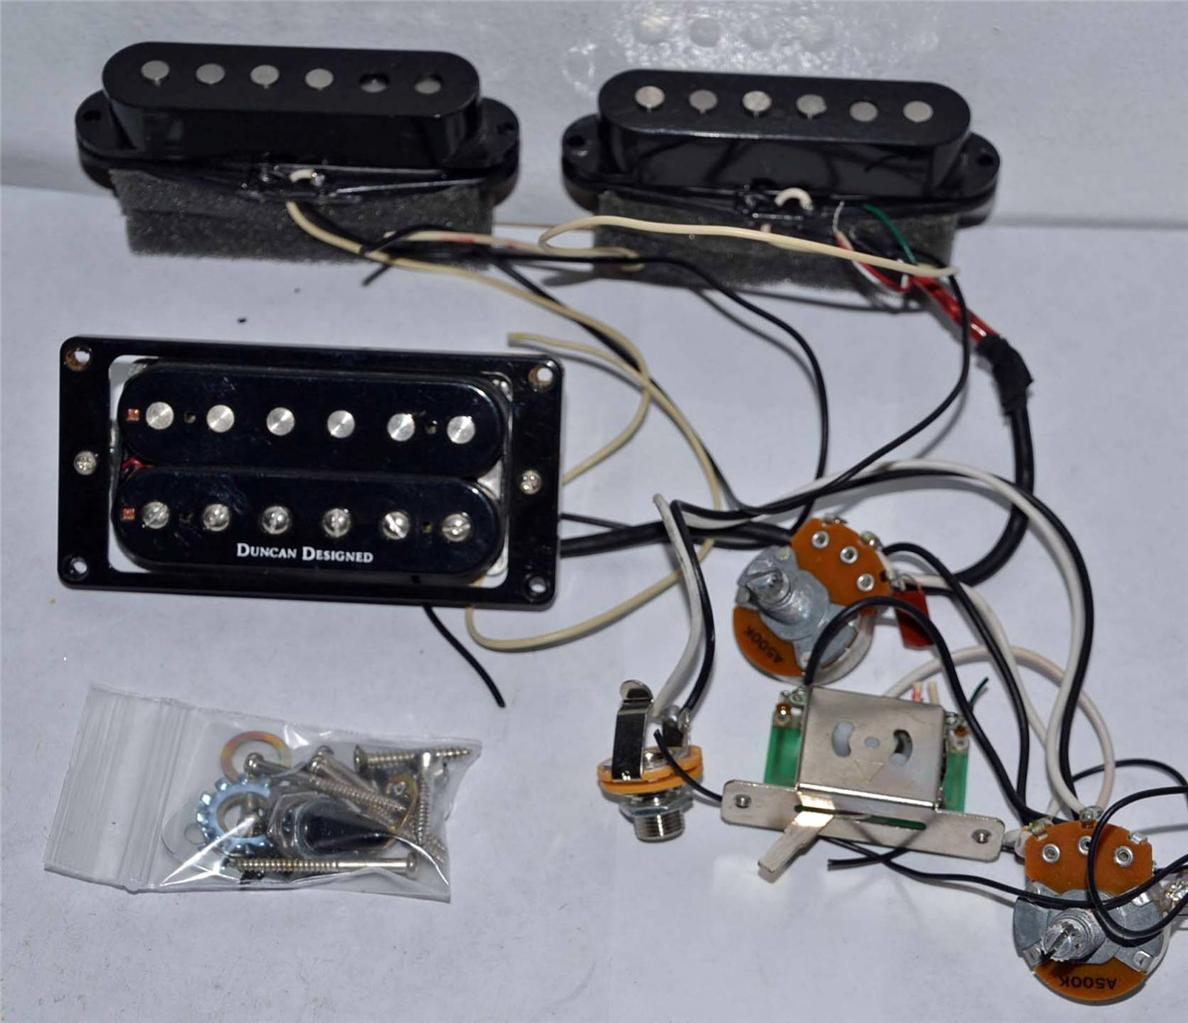 Jackson Humbucker Wiring. help me installing 4 leads conductors humbuckers  the. mod garage a flexible dual humbucker wiring scheme. complex jackson  humbucker wiring diagram jackson guitar. would it s be possible toA.2002-acura-tl-radio.info. All Rights Reserved.